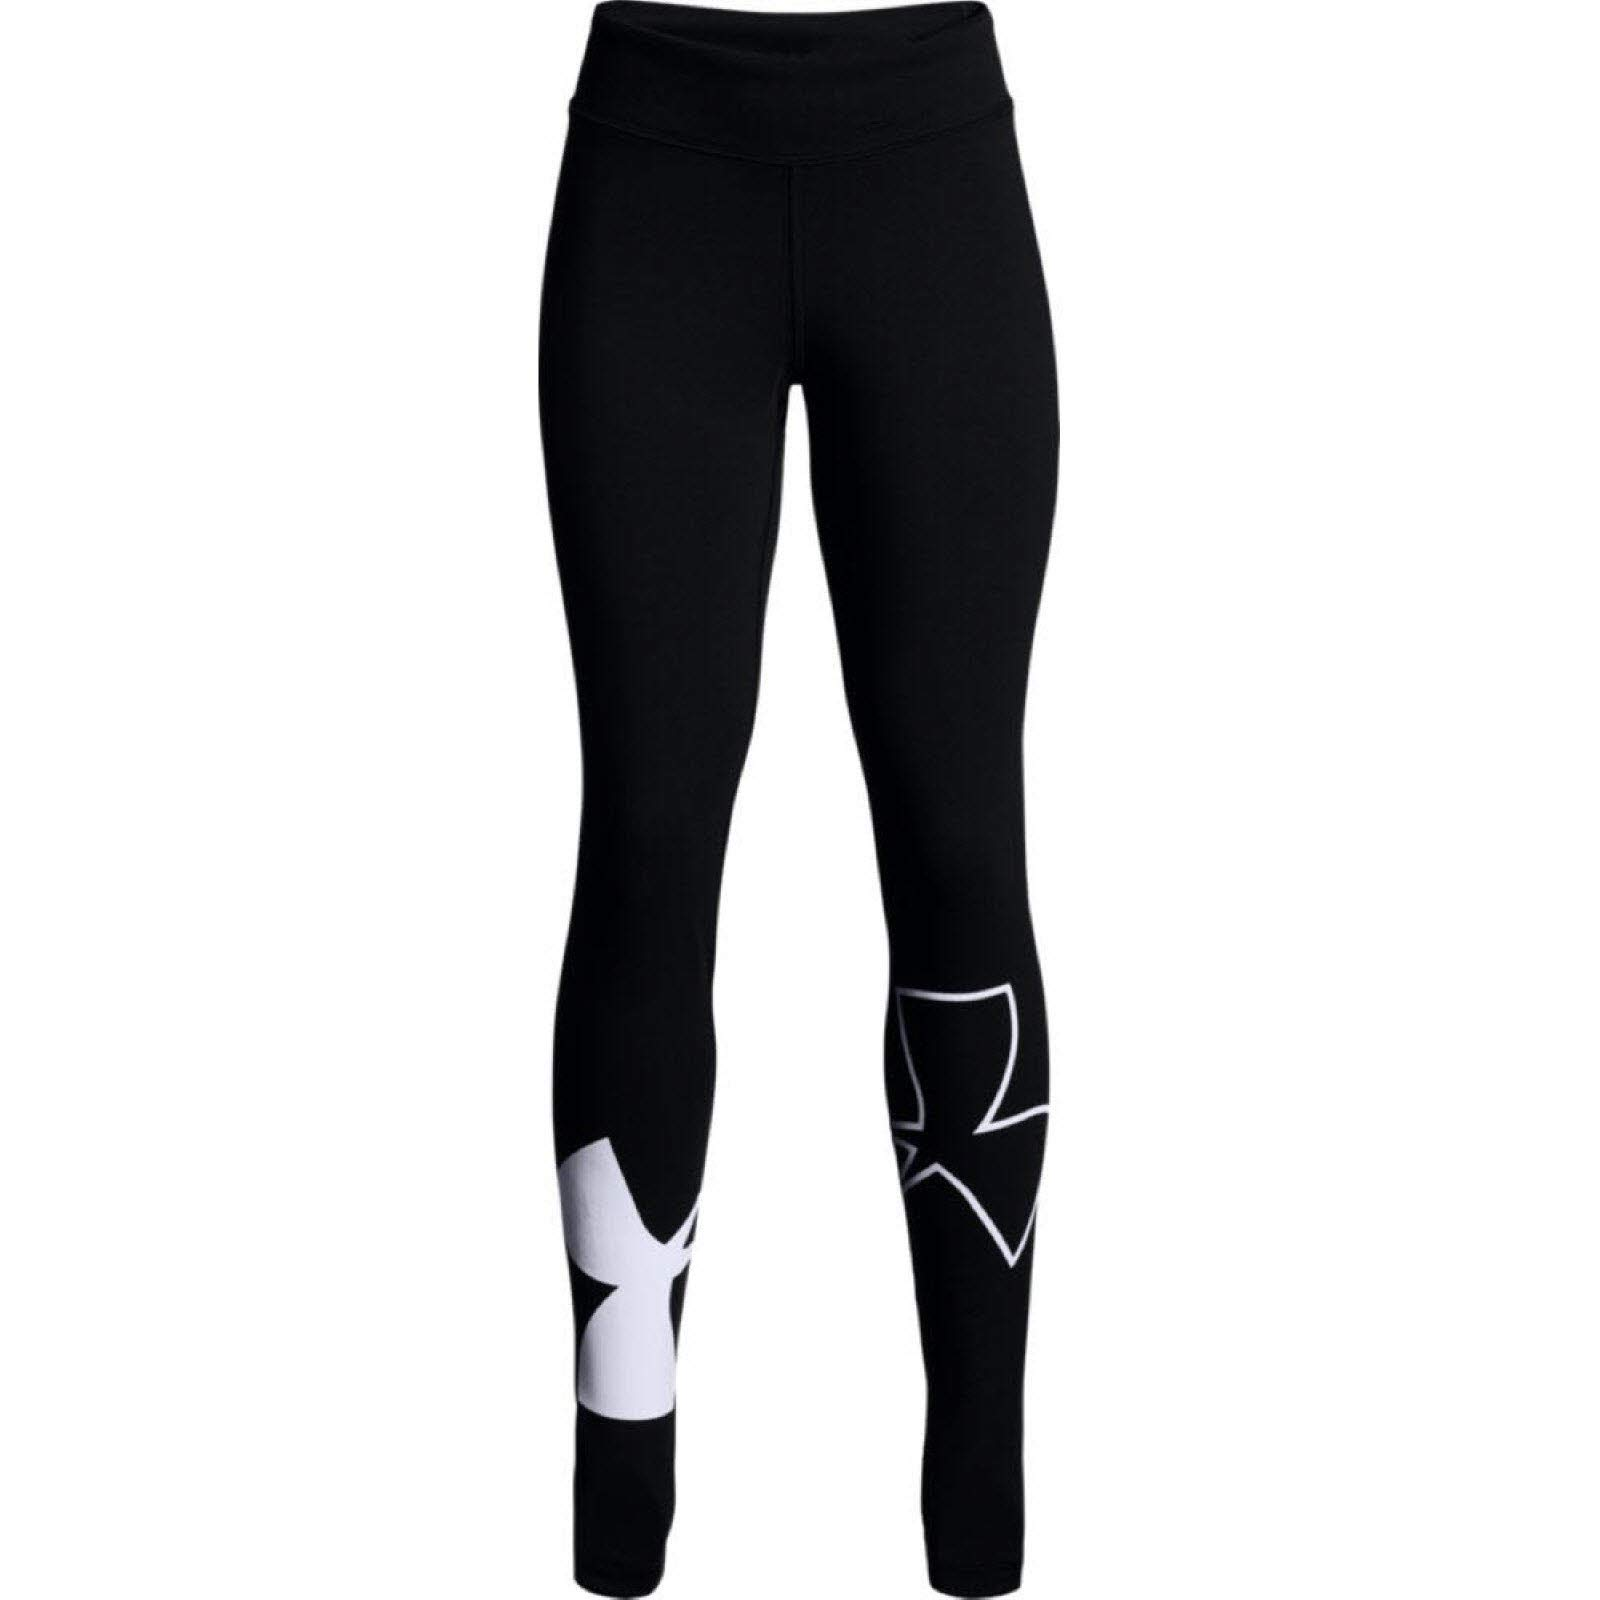 Under Armour Kids Girl's Favorite Knit Leggings (Big Kids) Black/White X-Large by Under Armour